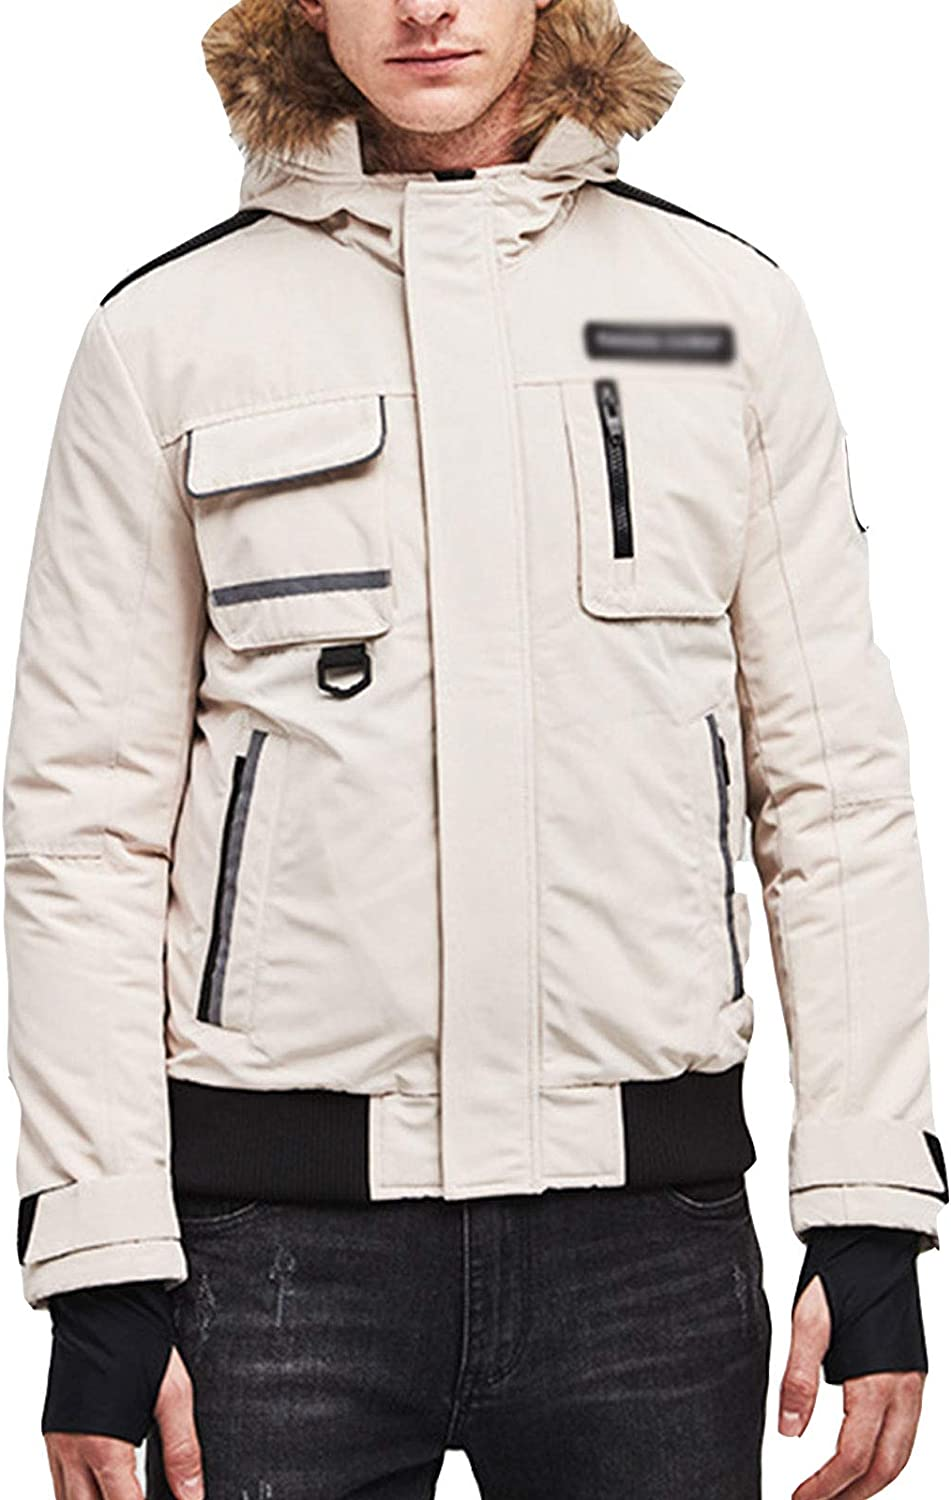 DUTUI Men's Winter Down Jacket, 80% White Duck Down Short Thick Down Jacket Casual Workwear Men's and Women's Warm Down Jacket,White,4XL